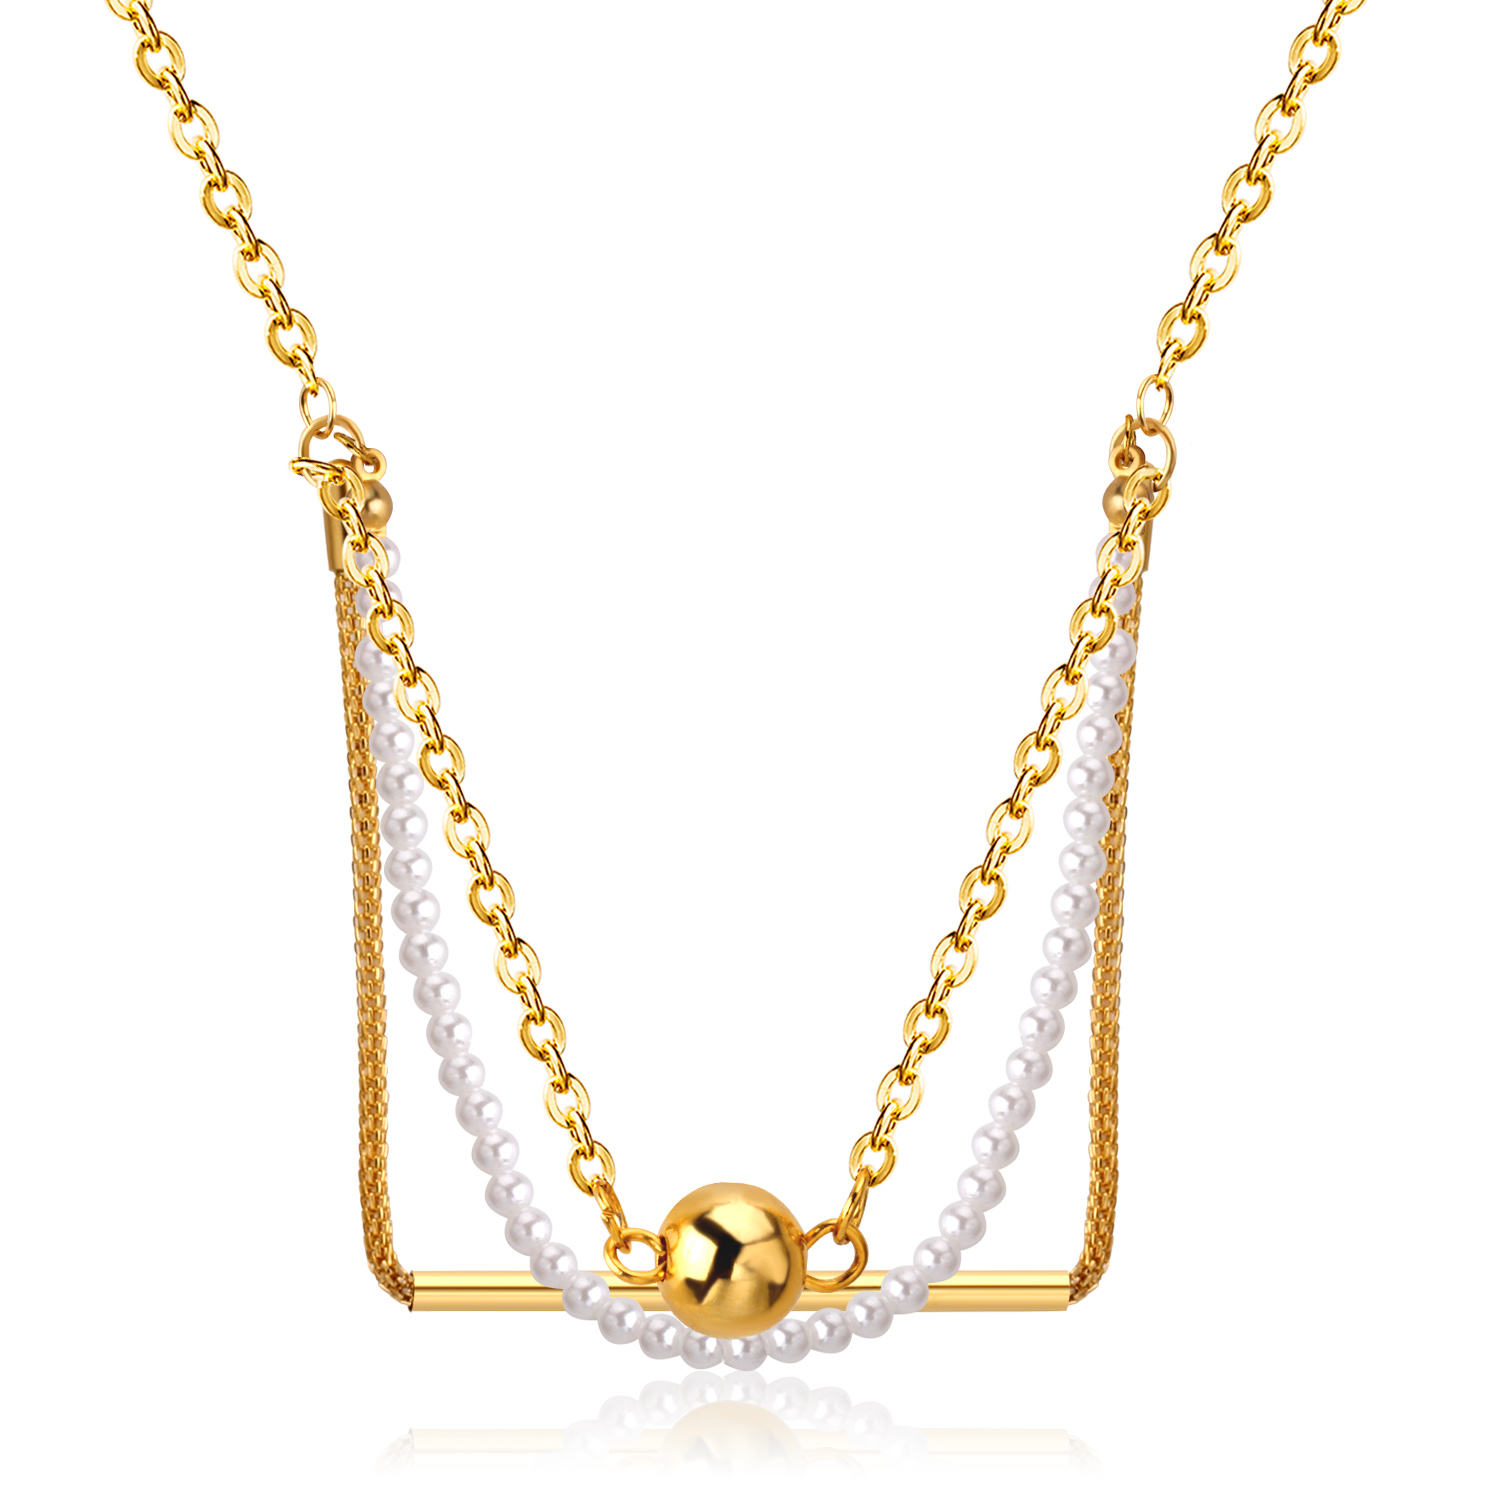 Charm Design Gold-plated Women Jewelry Stainless Steel Elegant White Pearl Chains Round Beads Necklace